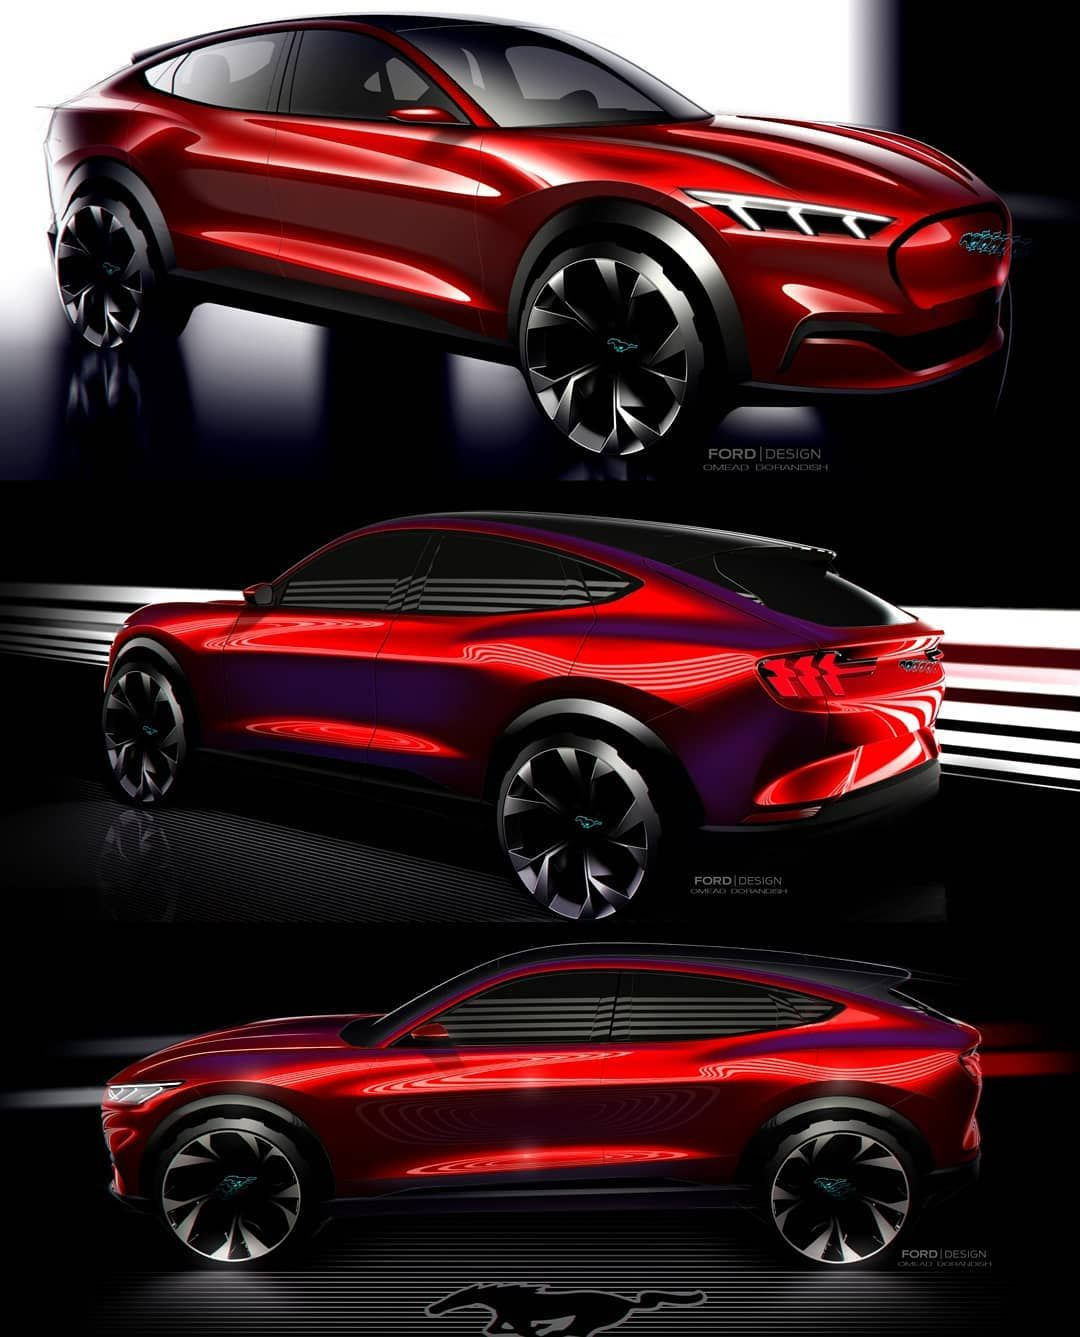 Design101trends On Instagram The Mustang Mach E Is Finally Revealed And Here Are Design Sketches Fordmustangmache Fordmache Design101trends